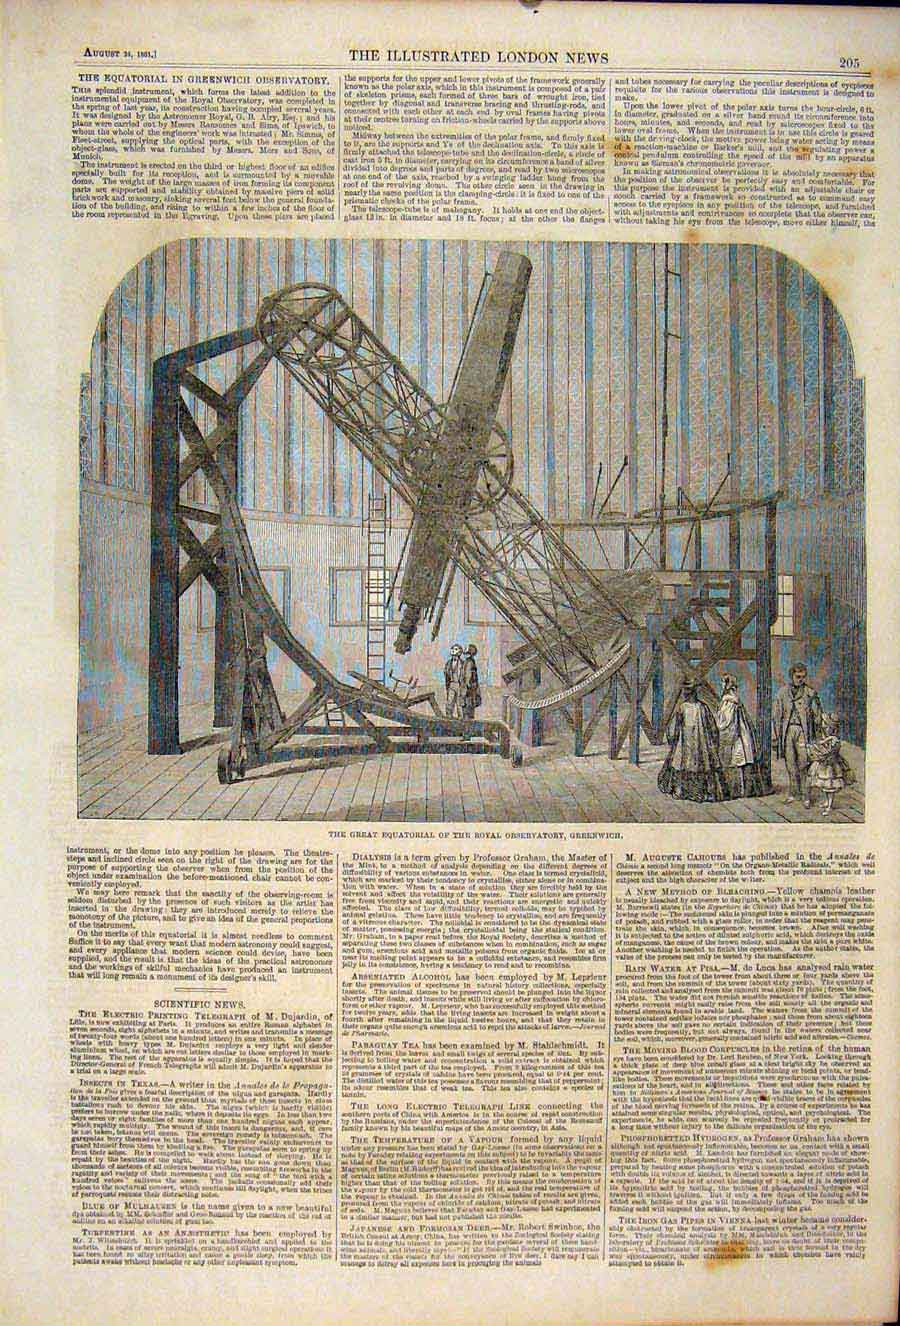 Print Equatorial Royal Observatory Greenwich London 1861 05Maa1 Old Original